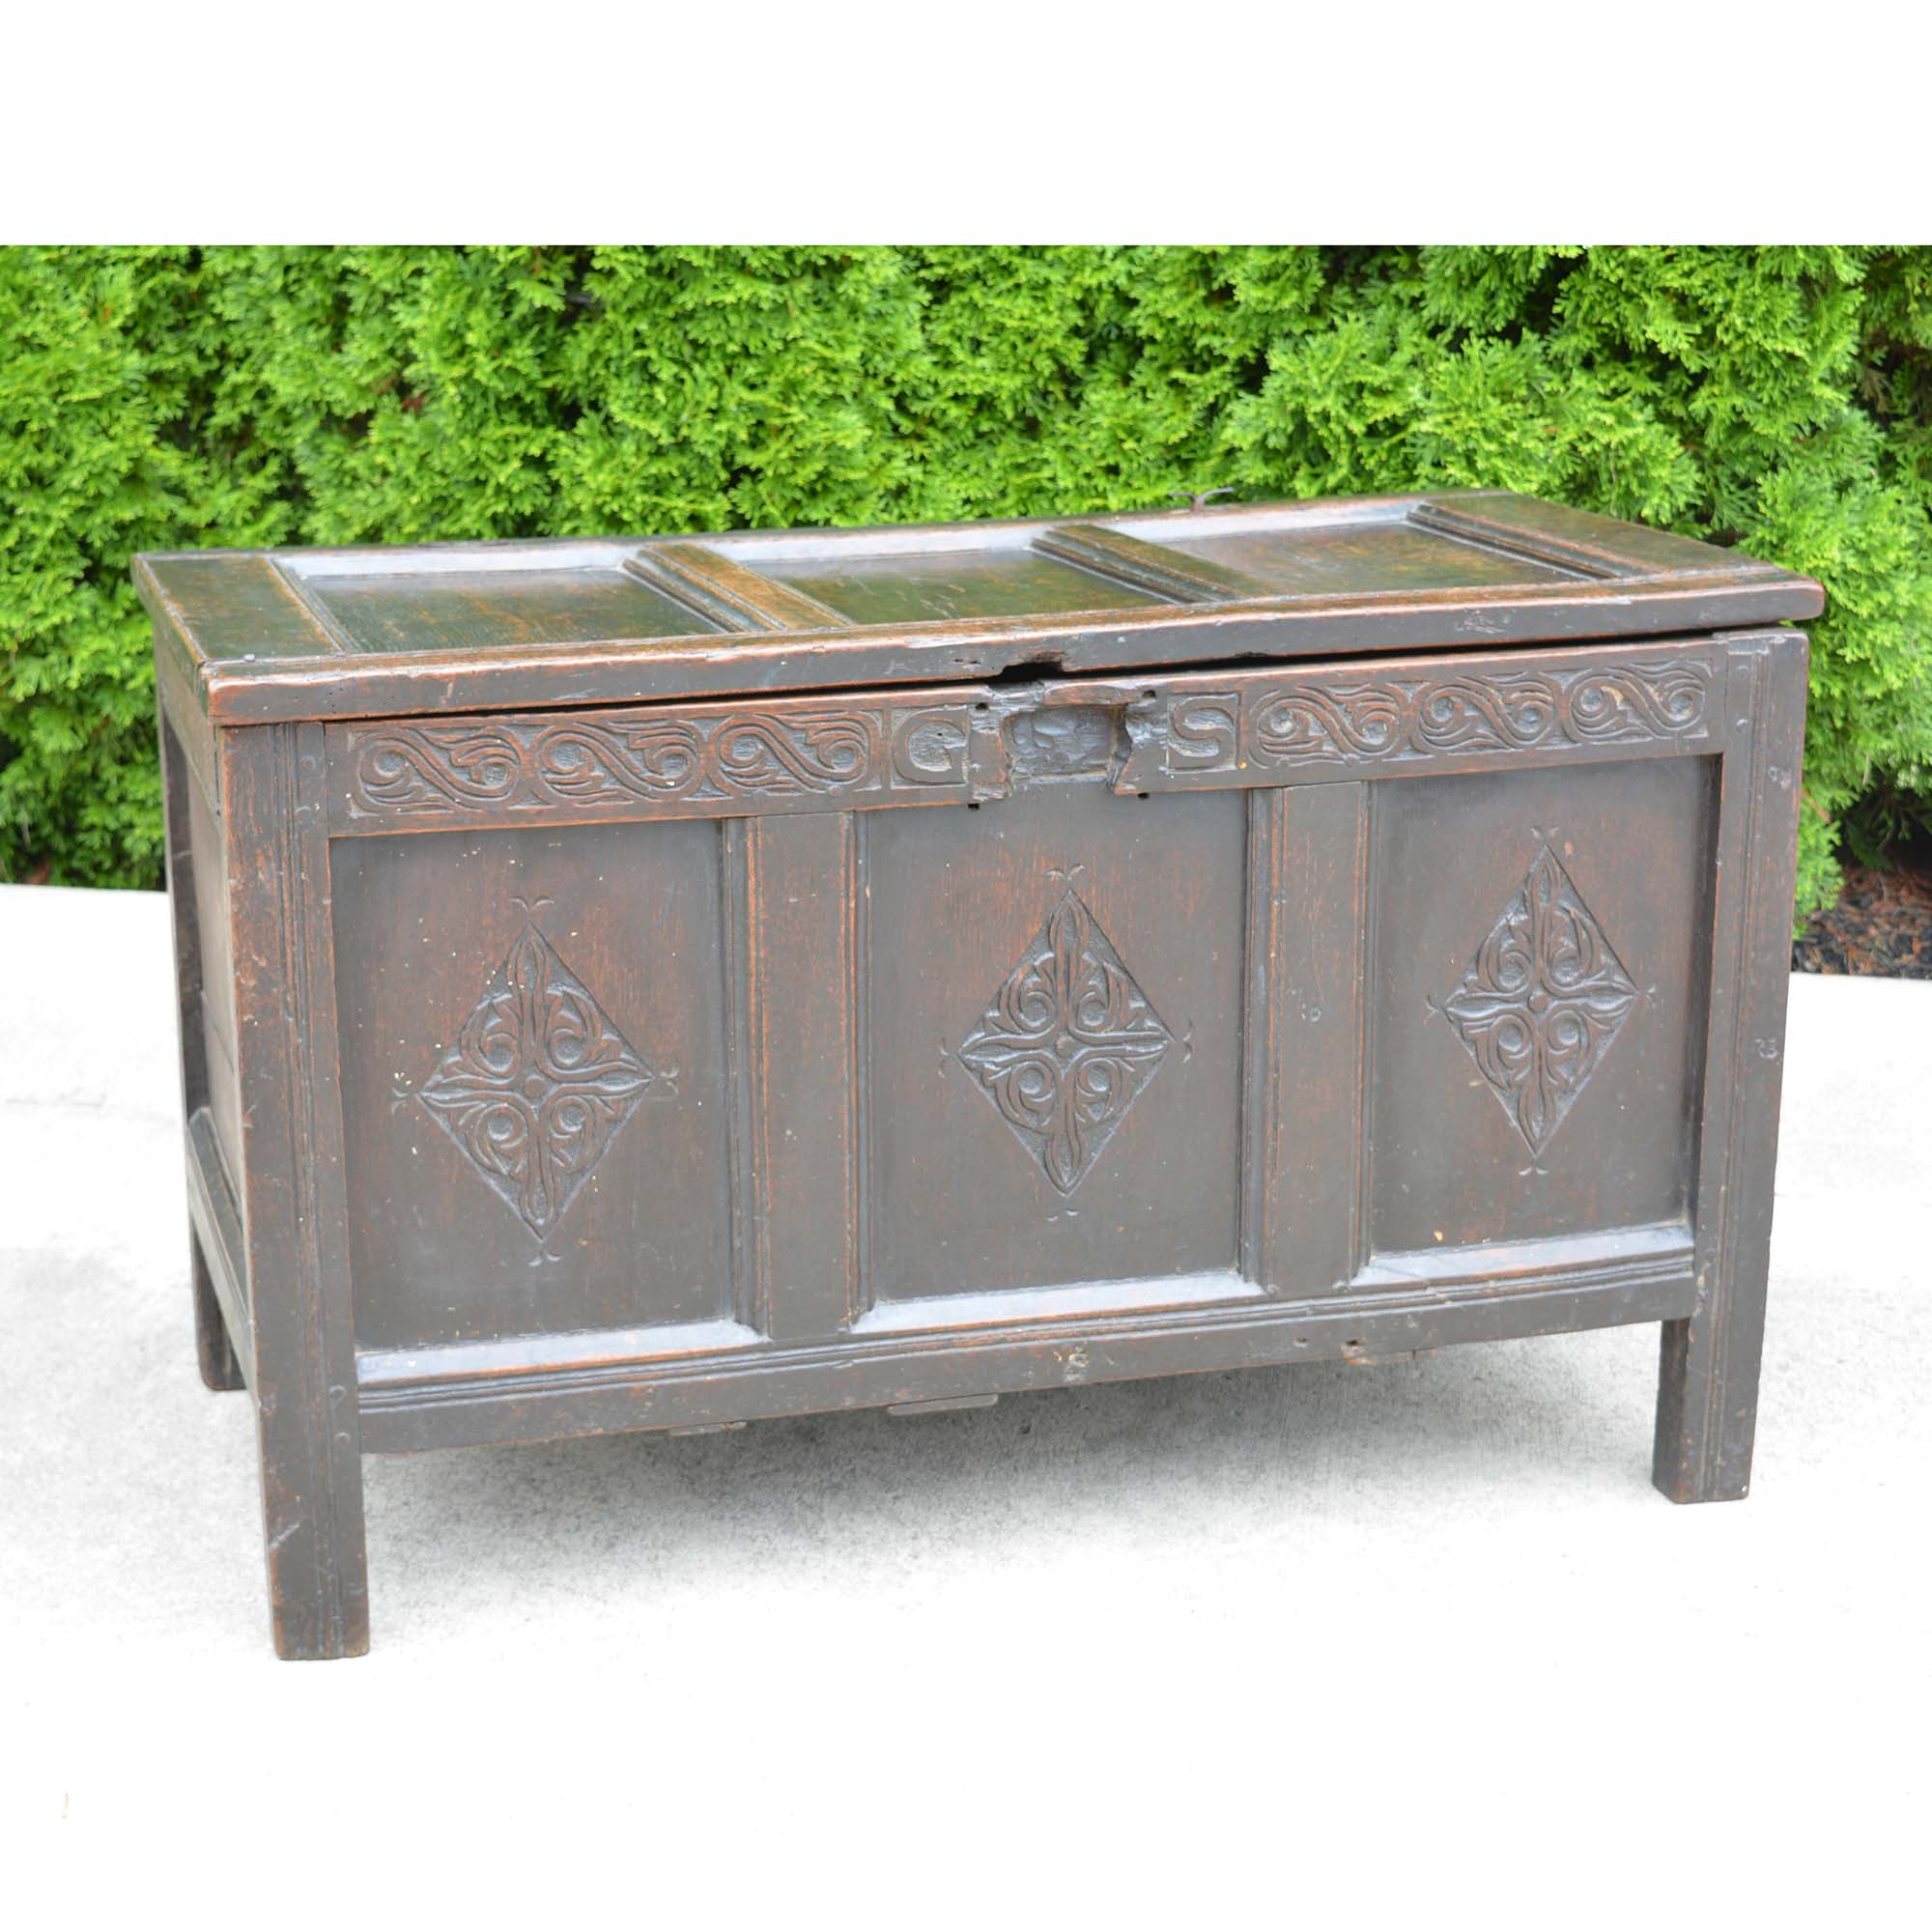 Antique Early 18th Century English Carved Oak Three-Panel Chest European Finds